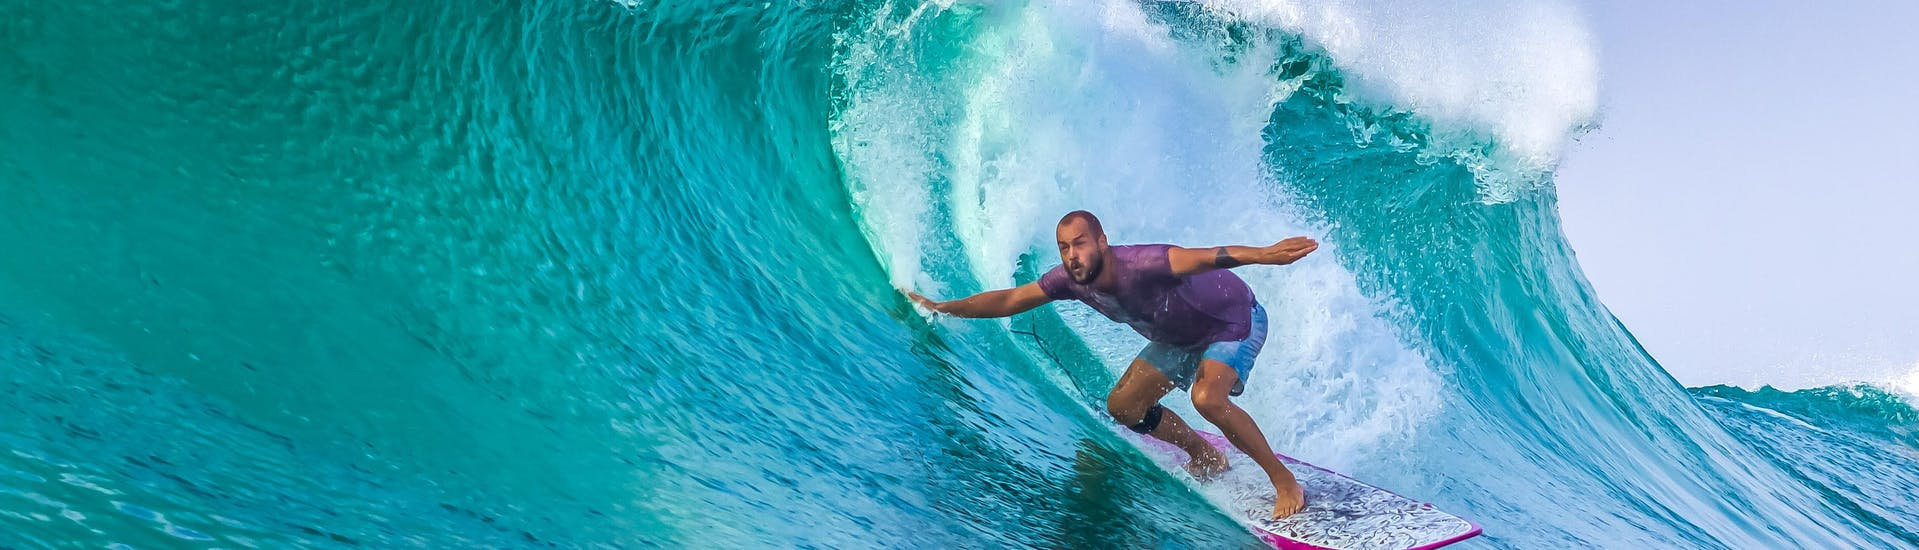 Semiprivate Surfing Lessons for Kids & Adults - All Levels